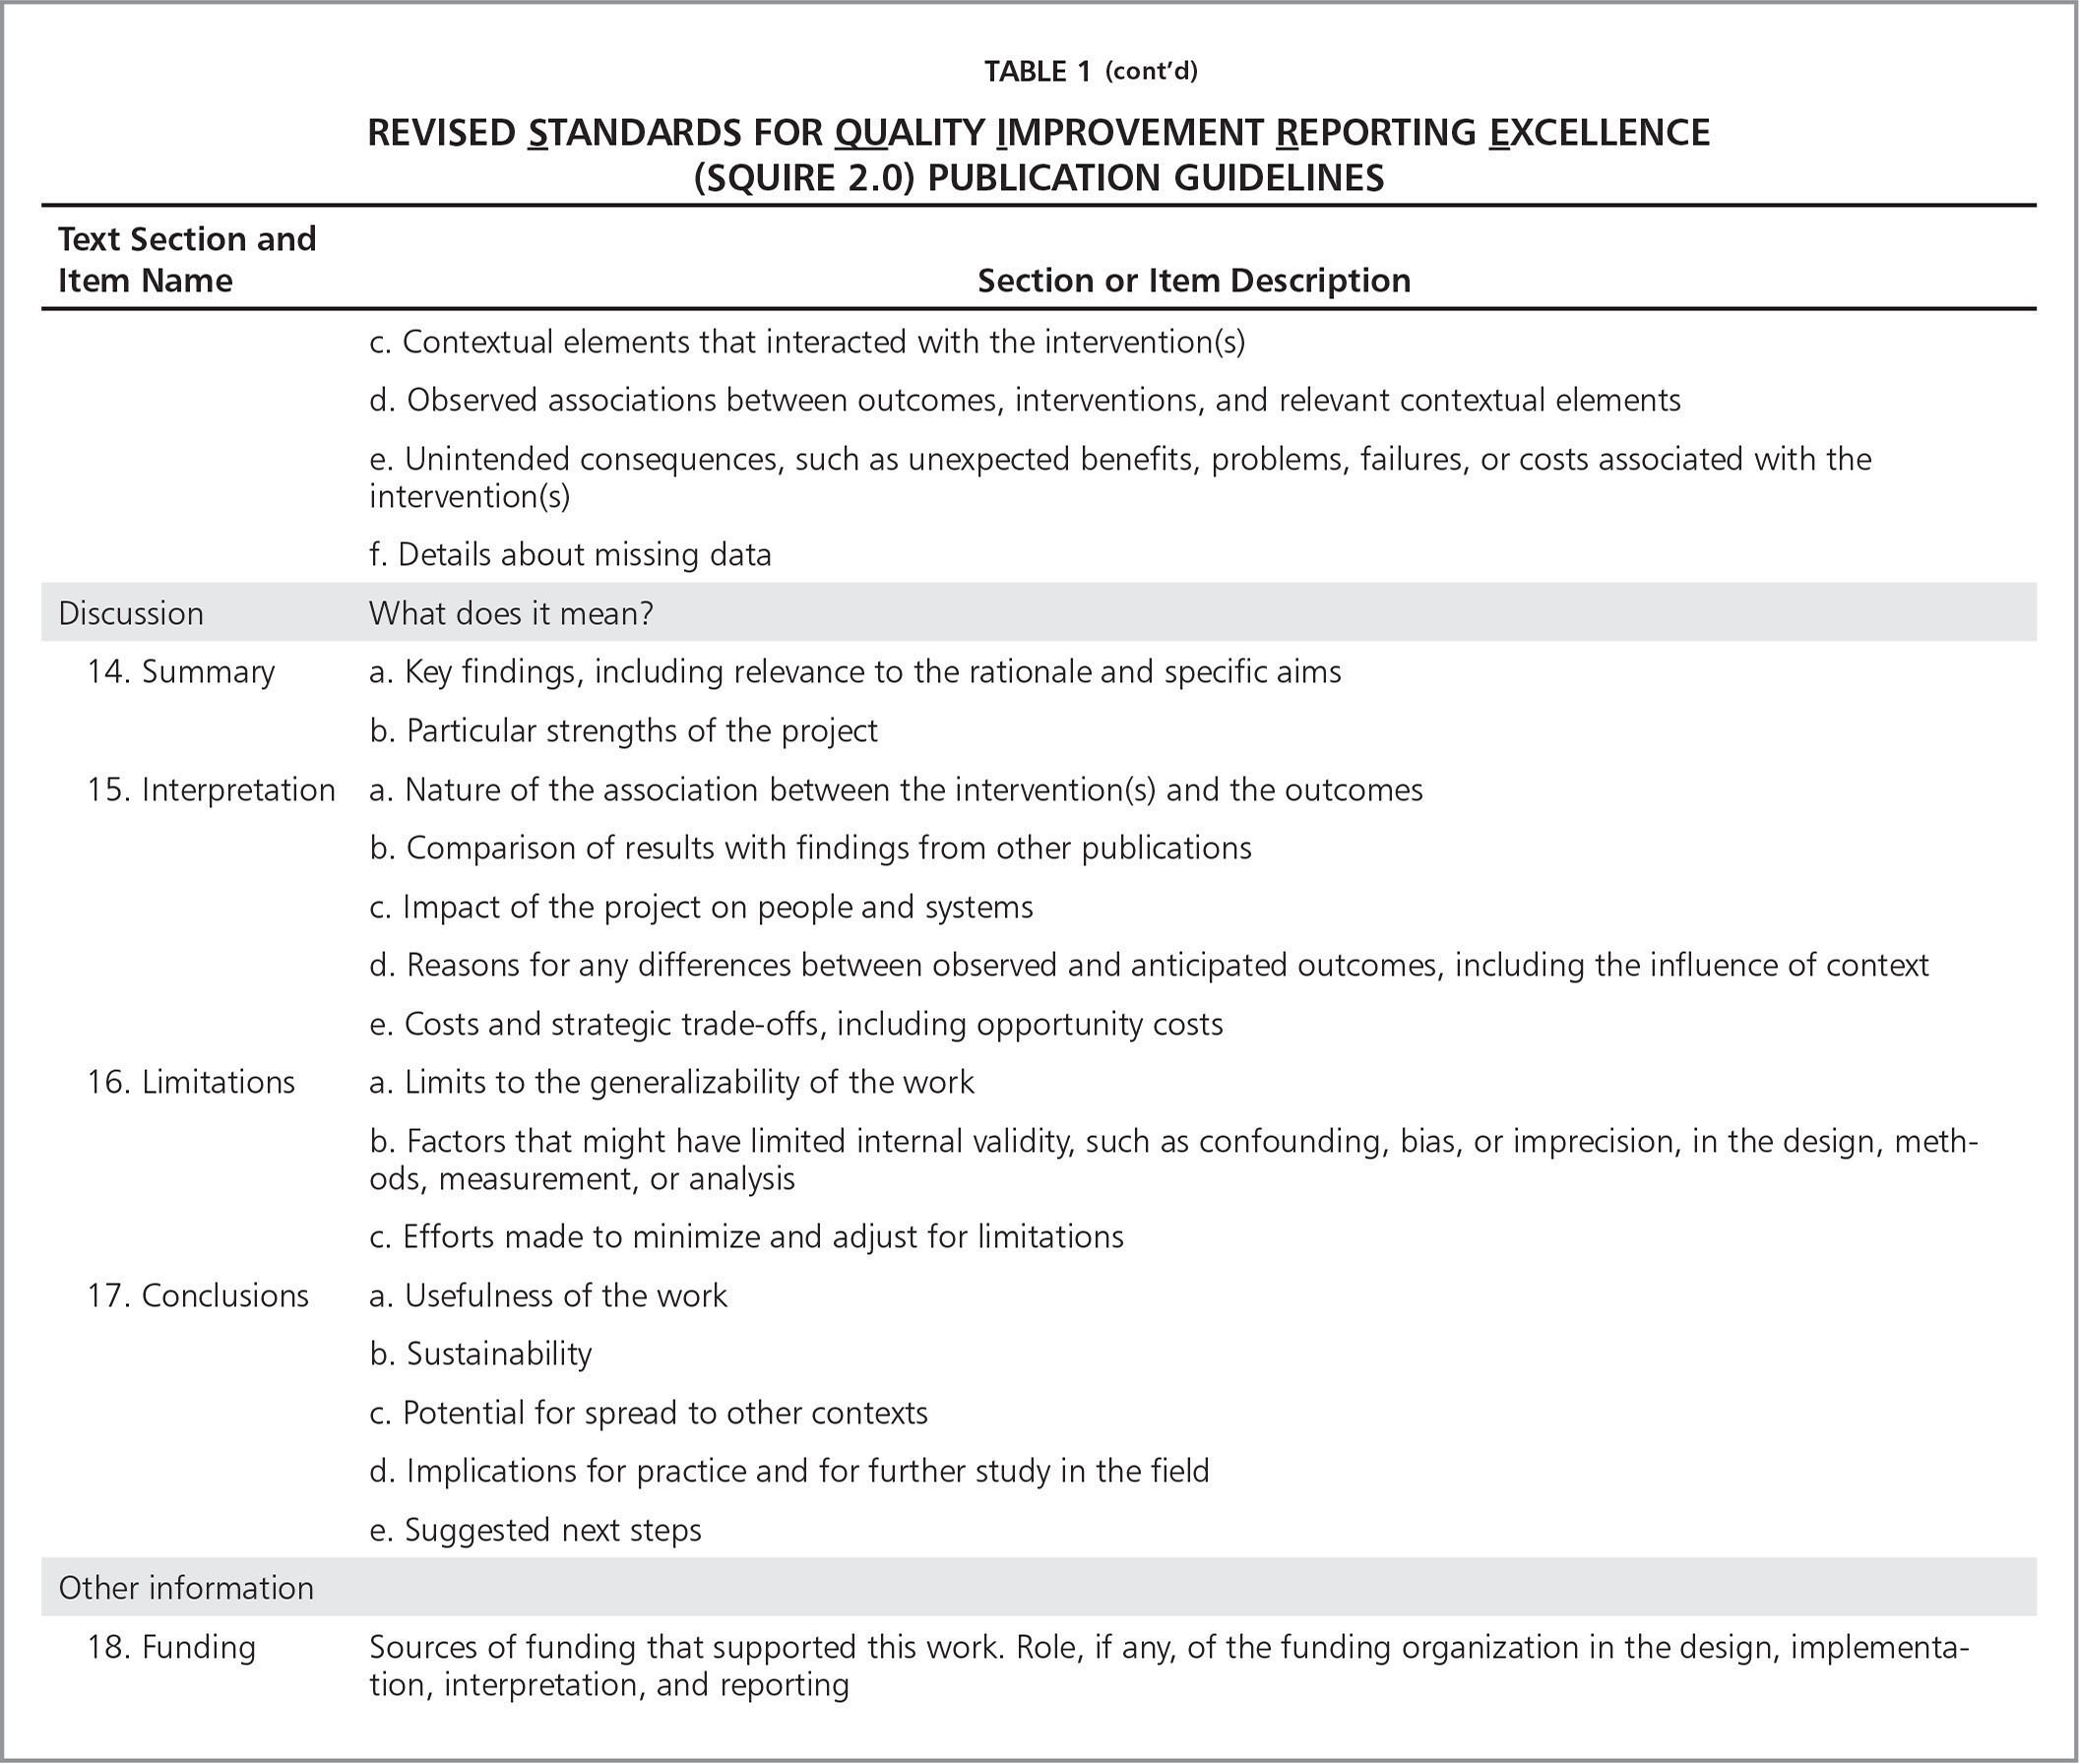 Revised Standards for Quality Improvement Reporting Excellence (SQUIRE 2.0) Publication Guidelines